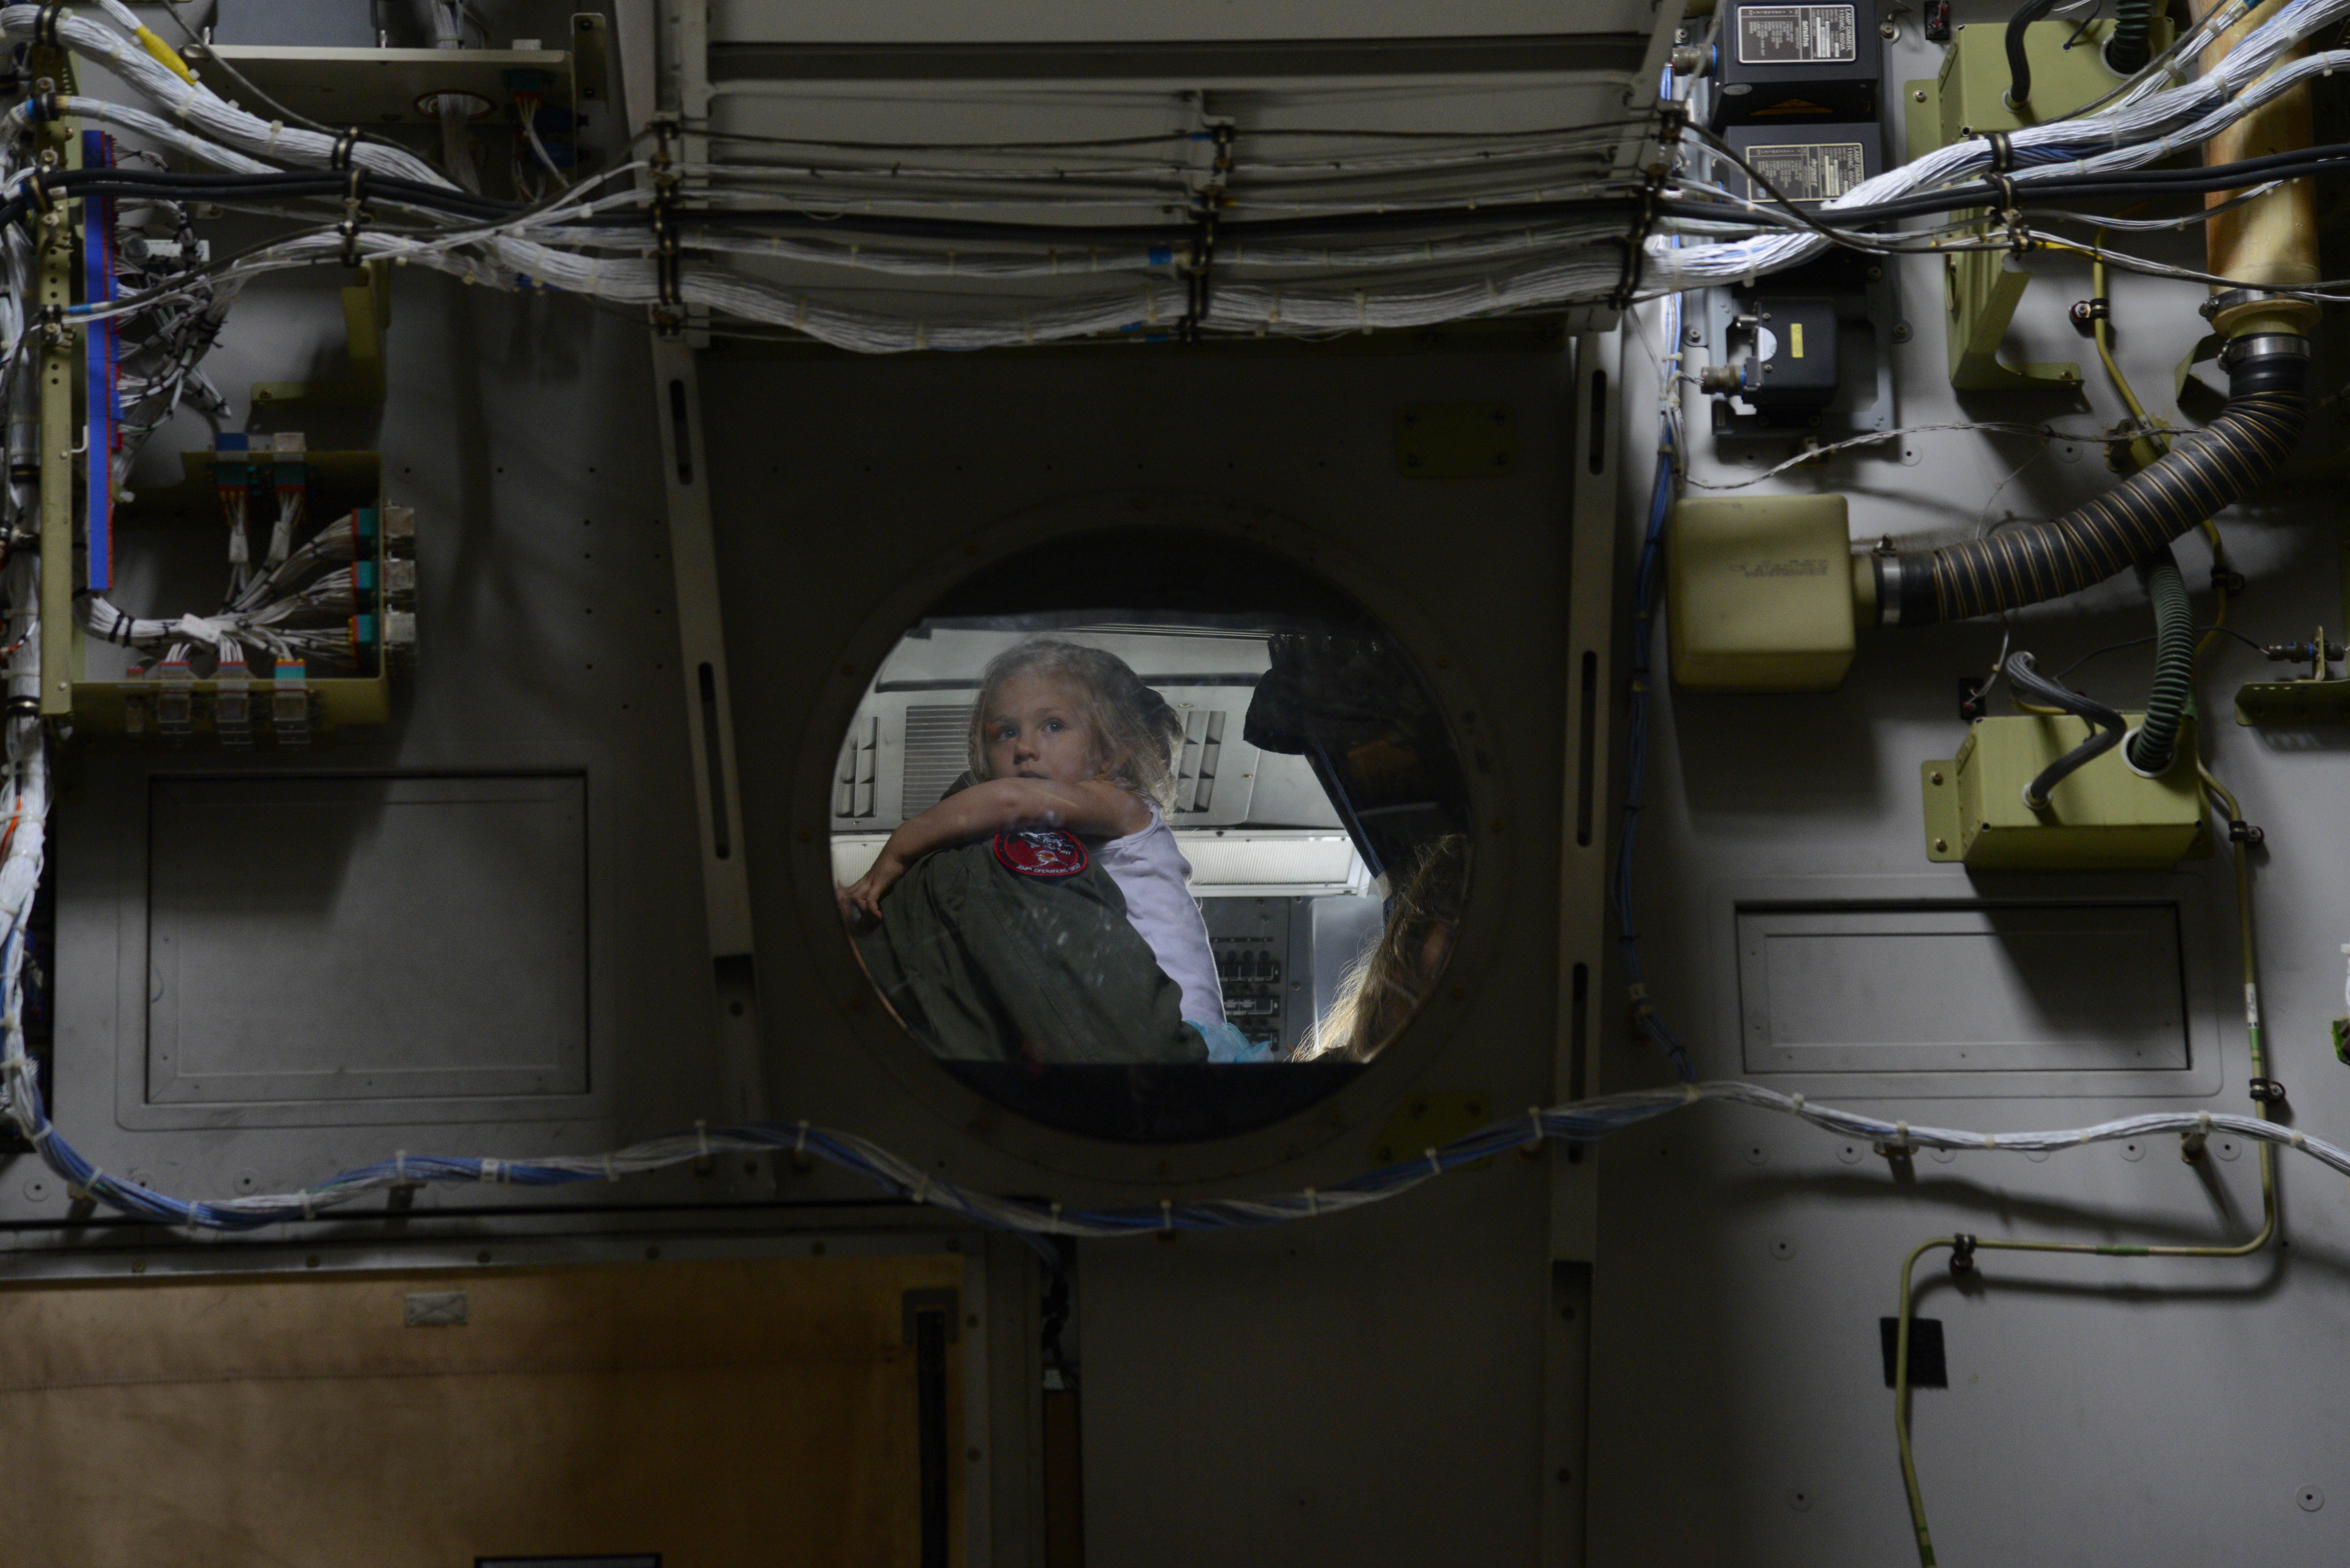 A child looks down from the cockpit of a C-17 Globemaster III during the Special Needs Day of Arctic Thunder Open House at Joint Base Elmendorf-Richardson, Alaska, July 29, 2016. The Arctic Thunder Open House is a biennial event hosted by JBER and is historically the largest two-day event in the state and one of the premier aerial demonstrations in the world. The event features more than 40 key performers and ground acts to include the JBER joint forces, U.S. Air Force F-22, and U.S. Navy Blue Angels demonstrations teams, July 30-31.  (U.S. Air Force photo by Airman 1st Class Valerie Monroy)